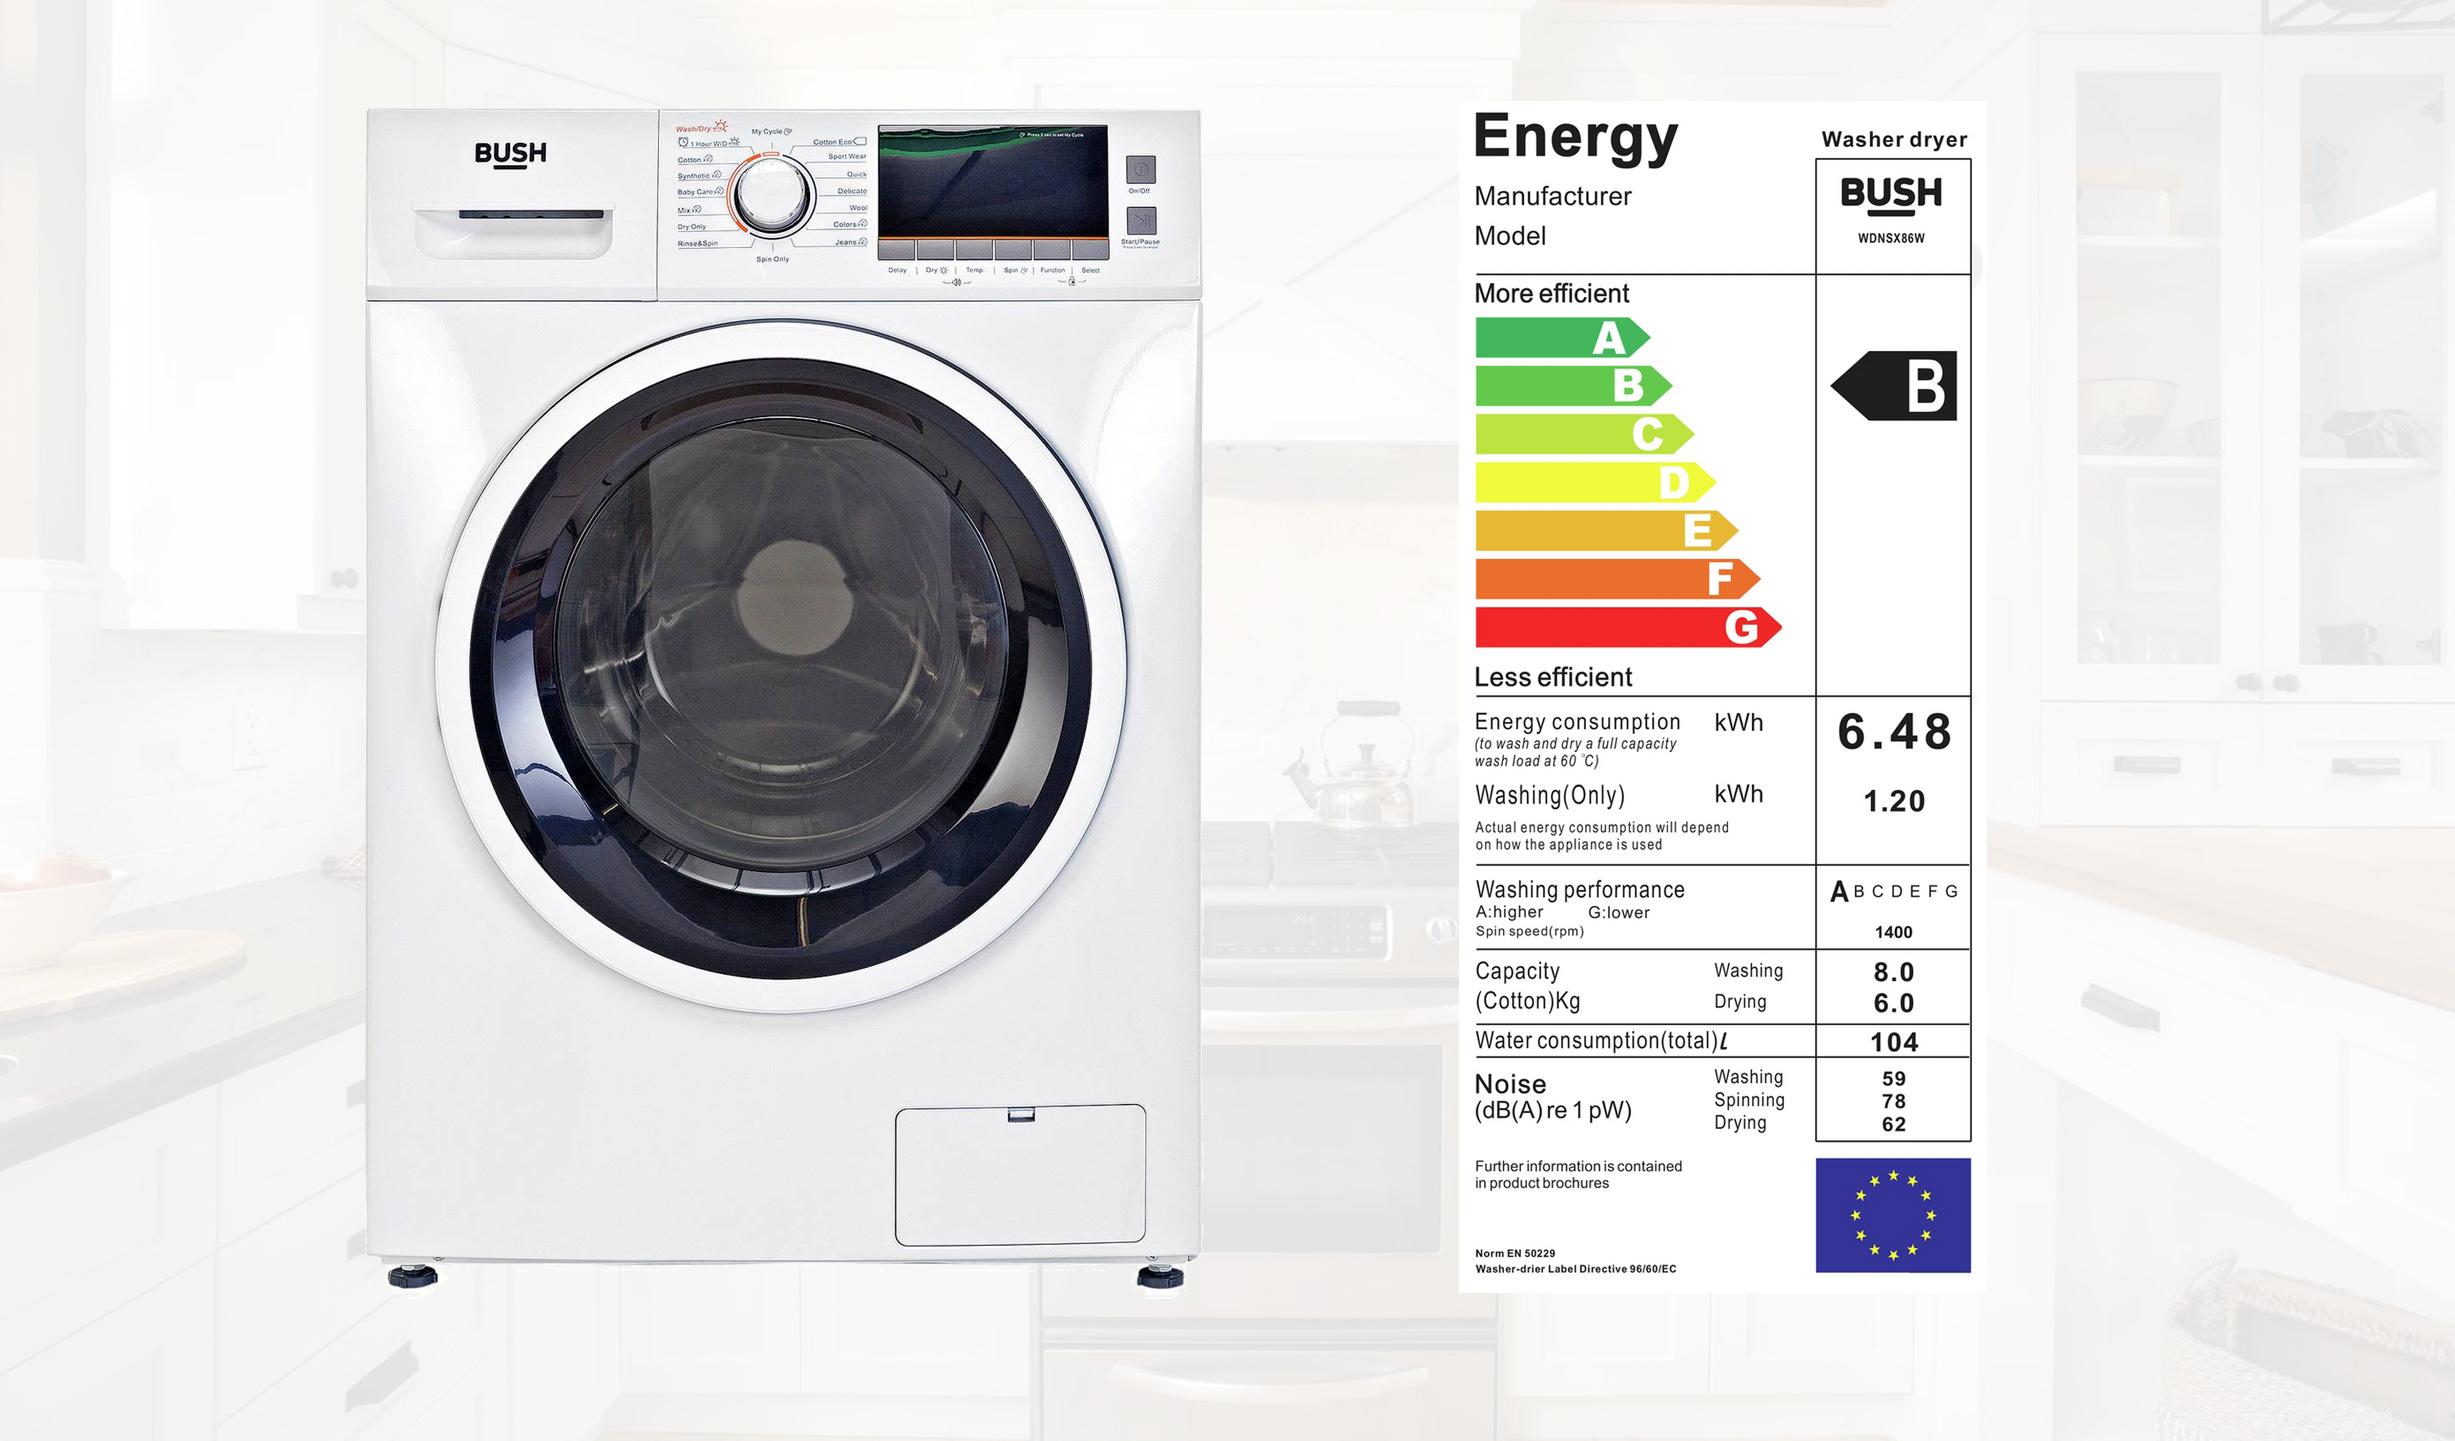 Bush Wdnsx86w 8kg Washer Dryer Review Best Price